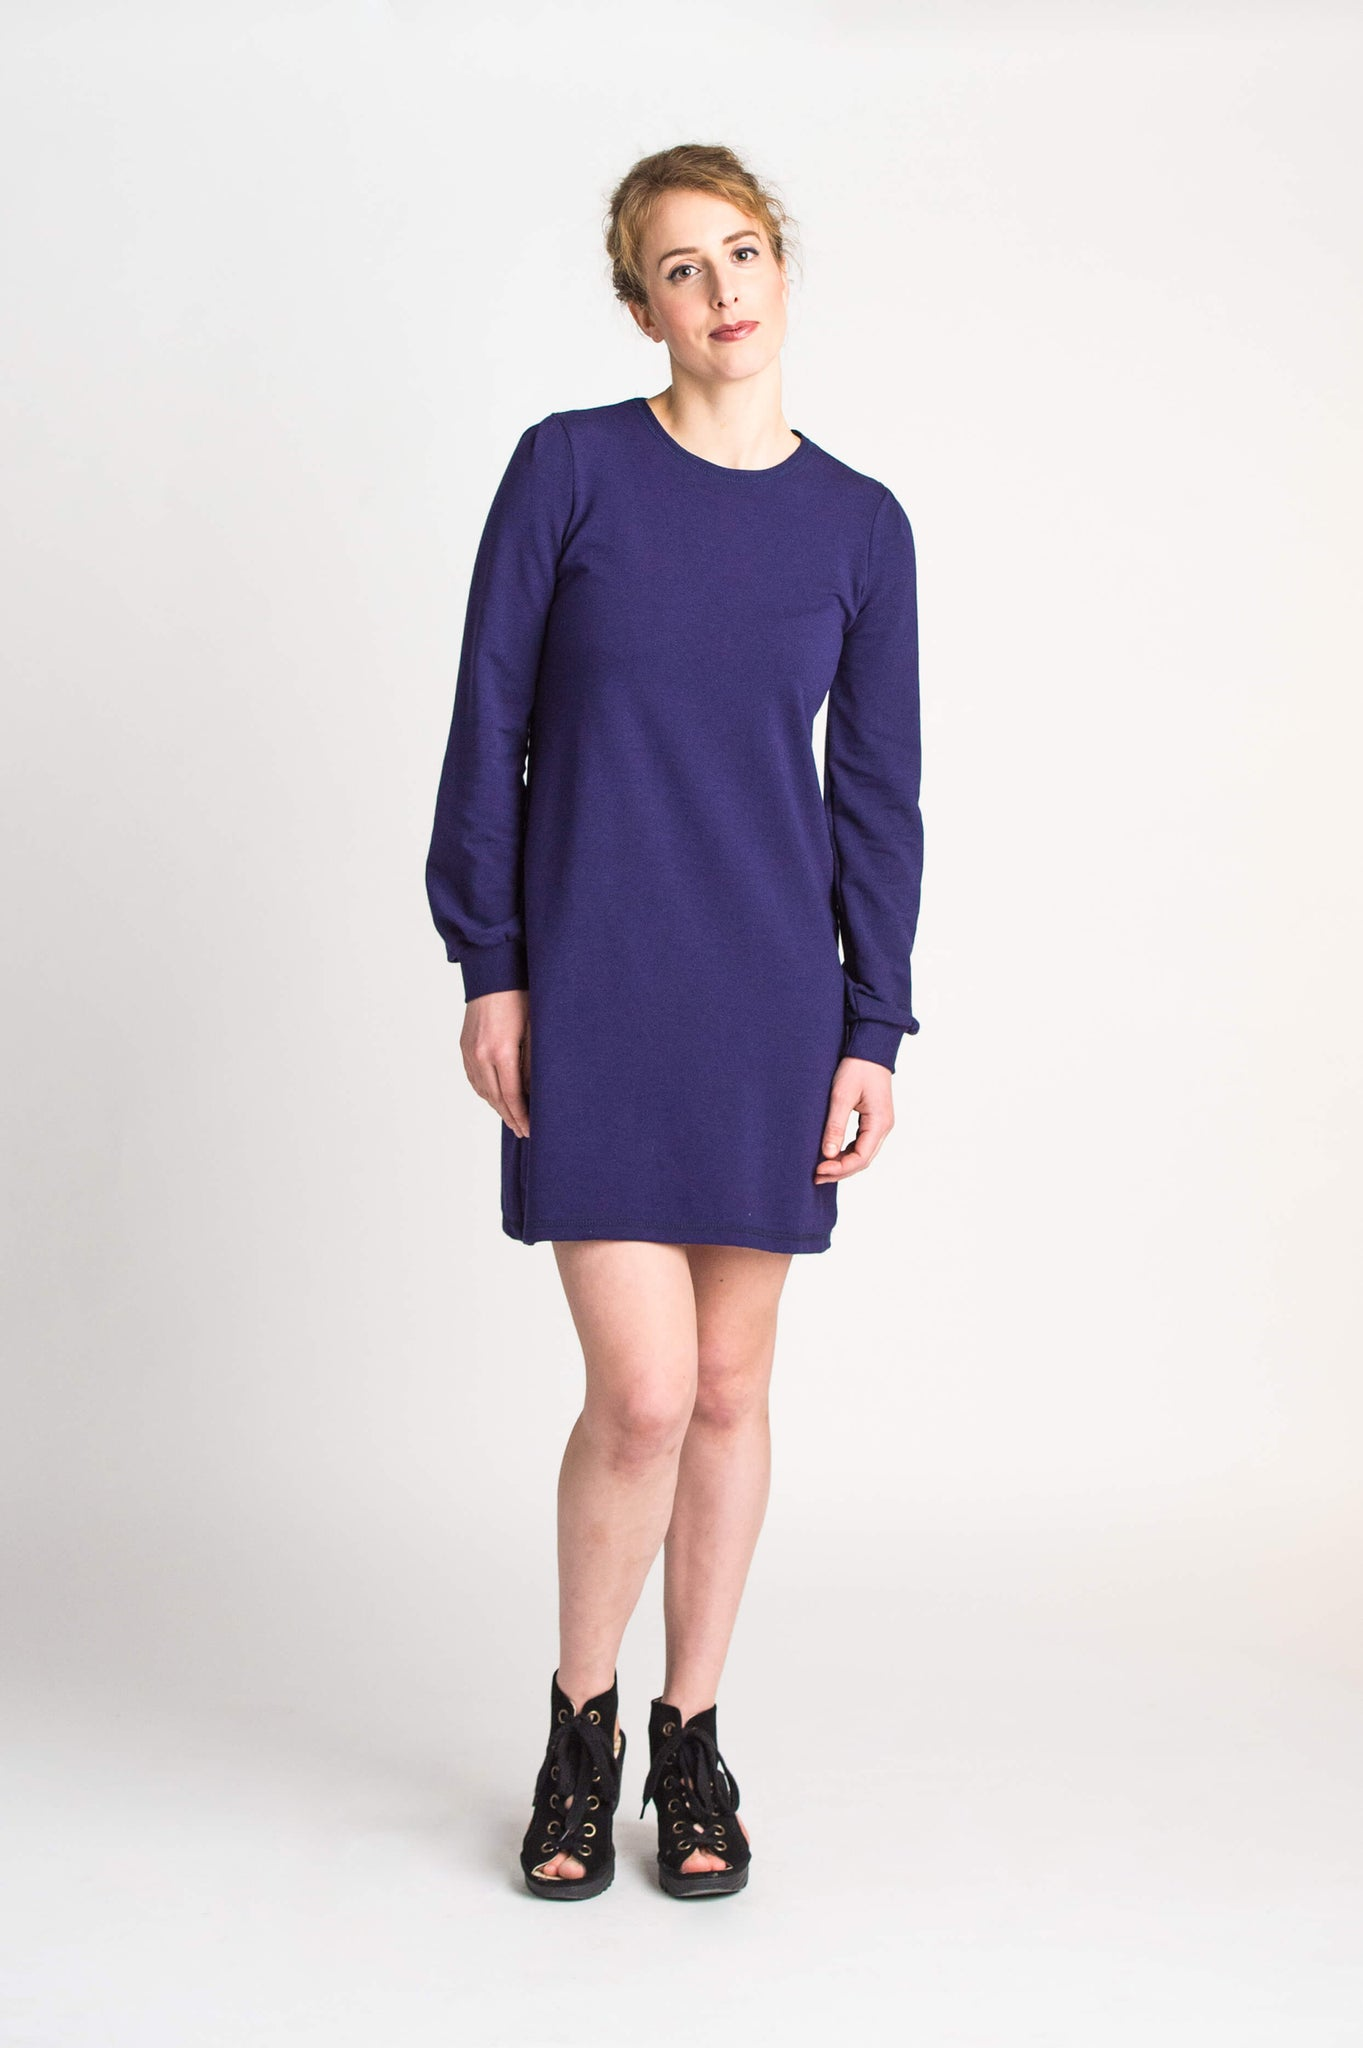 Duffield-Design-Cosmos-Iris-Blue-Dress-Front